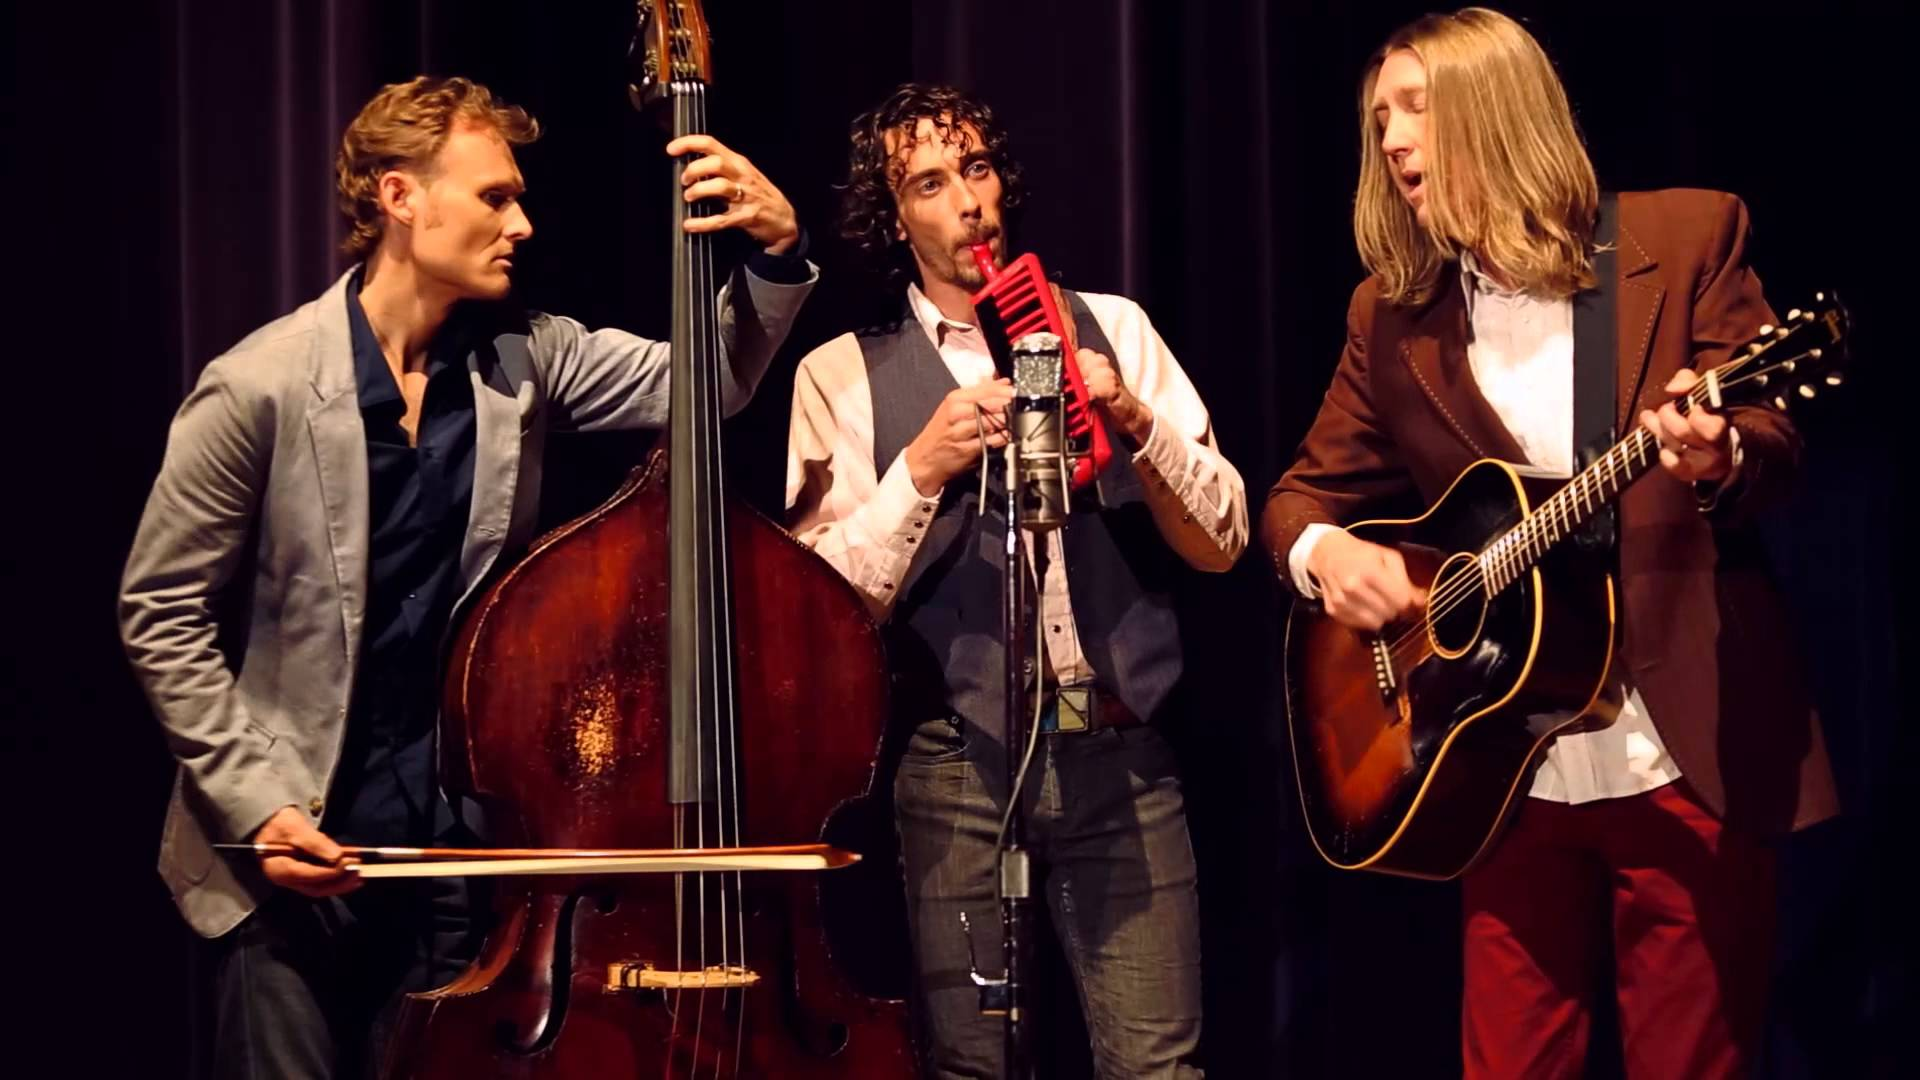 Review / Setlist | The Wood Brothers @ The Vic 11/7/15